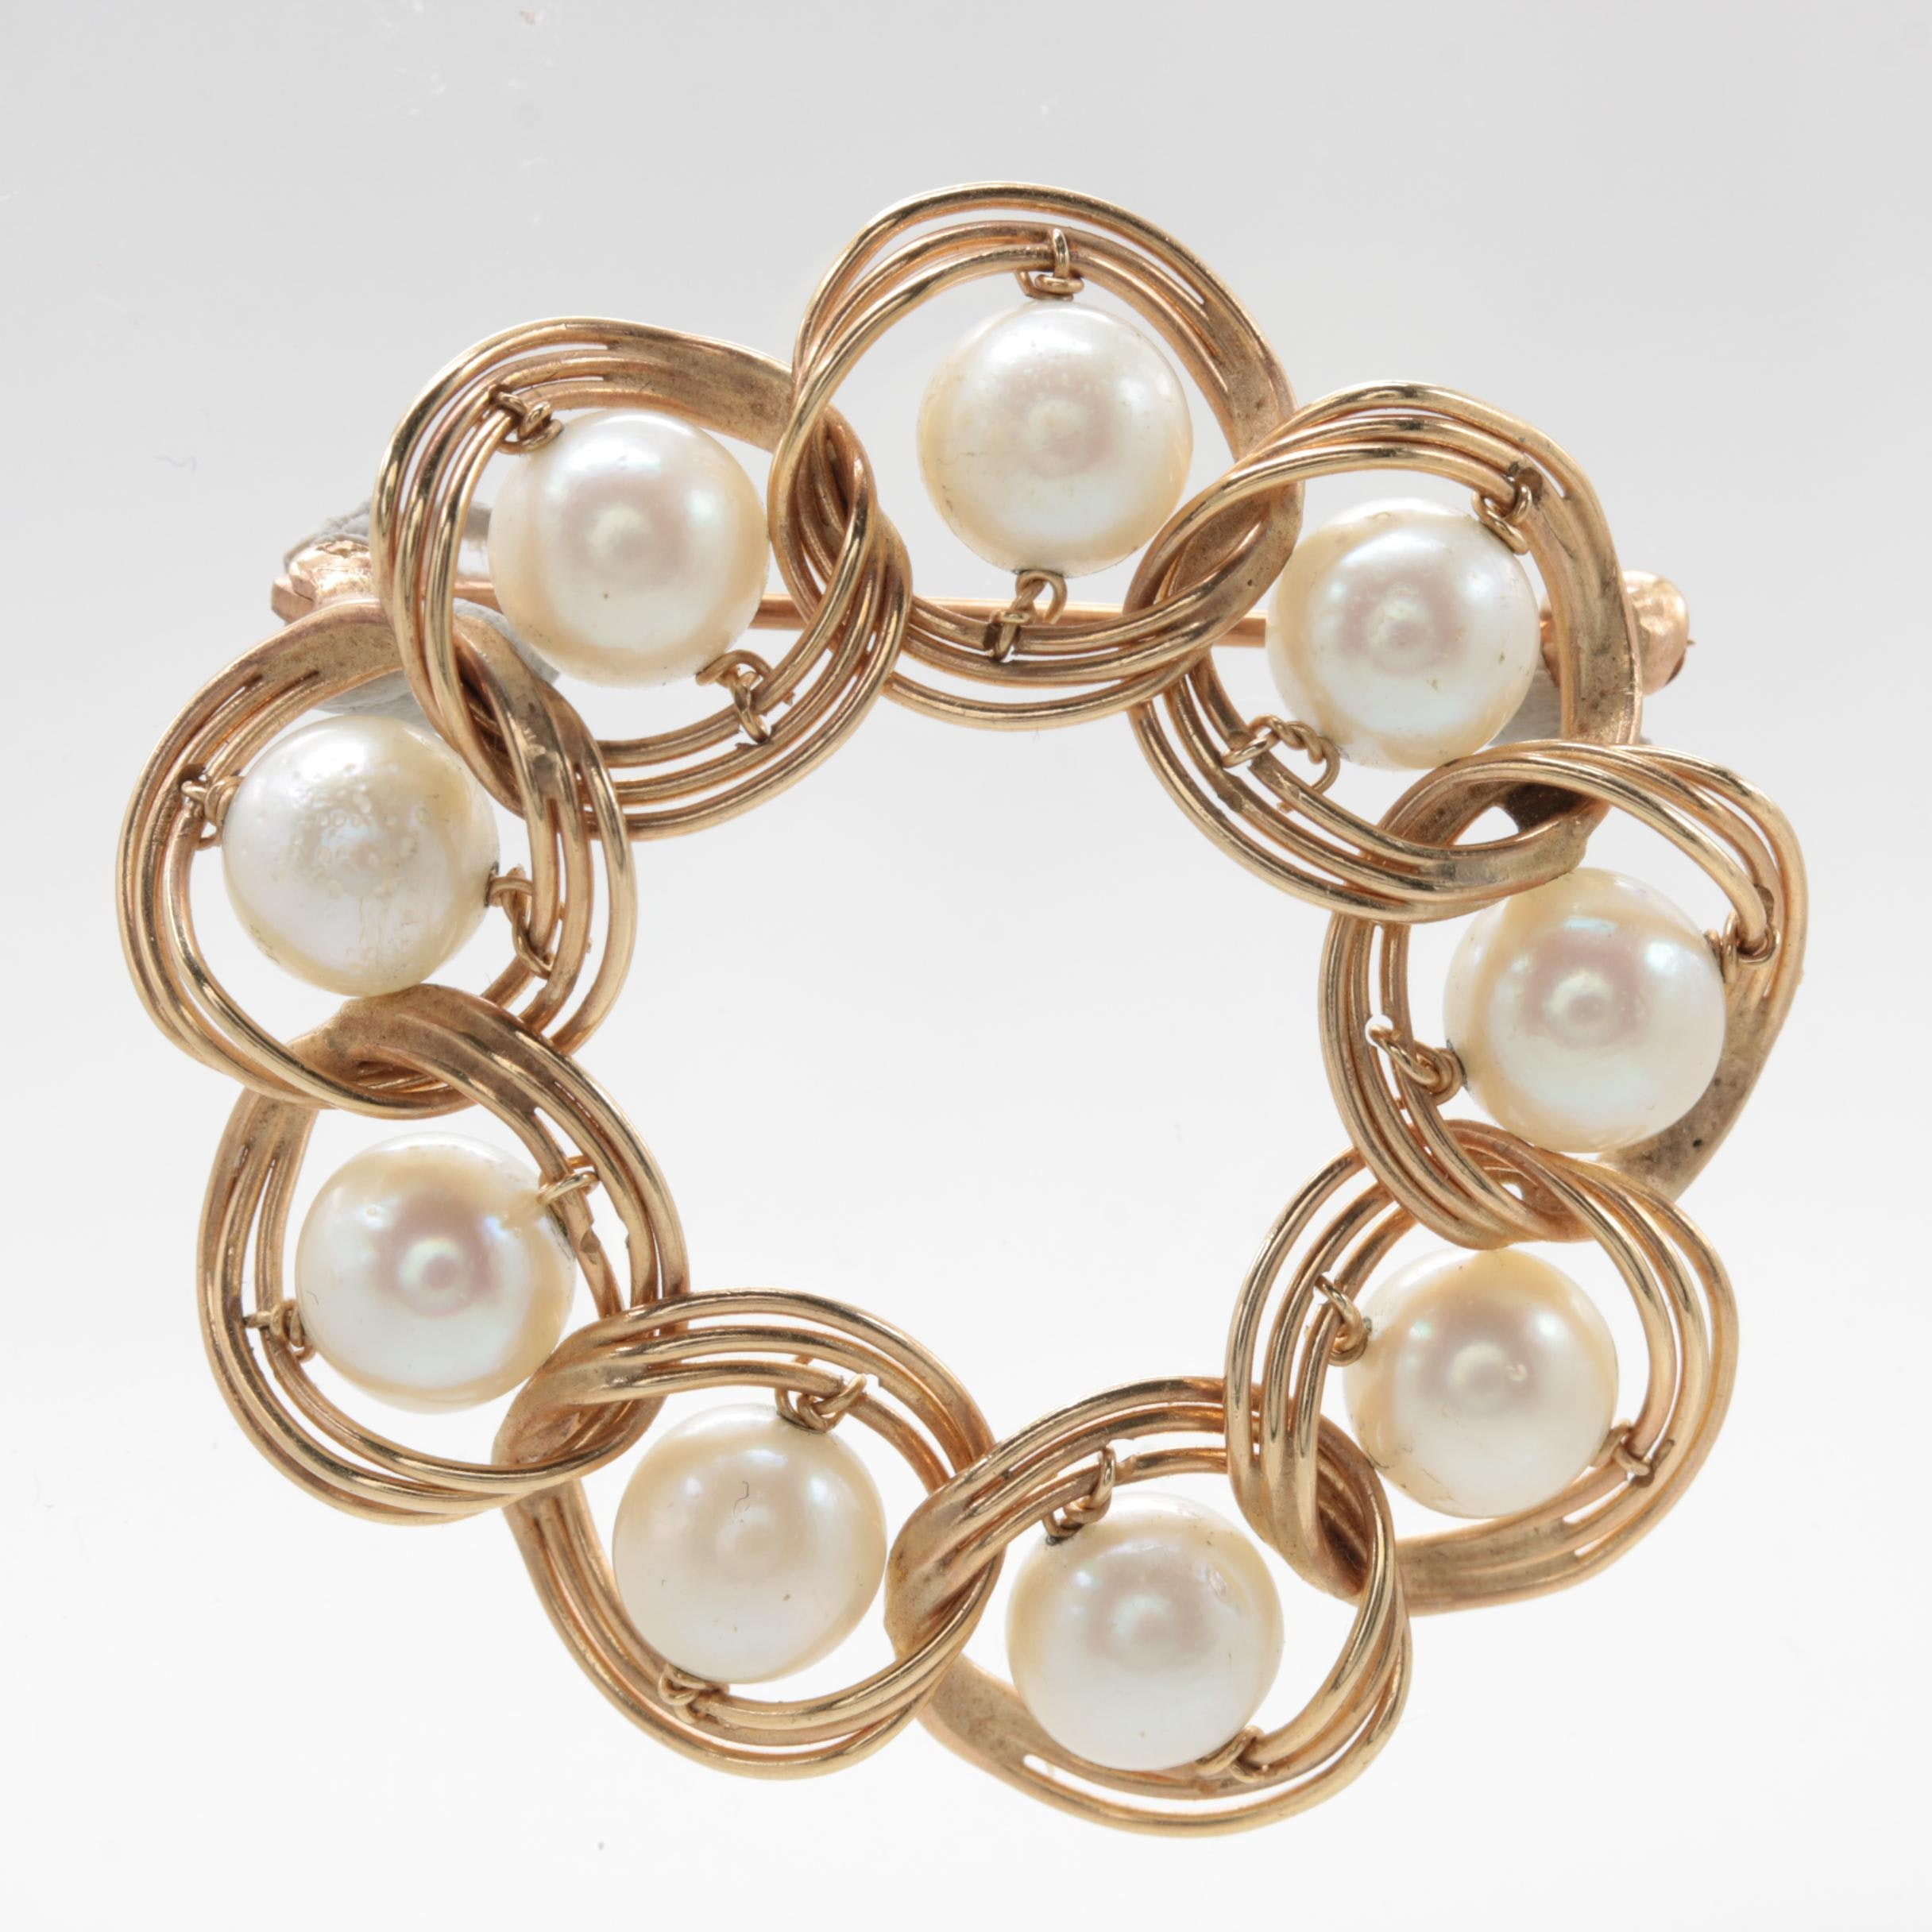 Circa 1960s - 1970s 14K Yellow Gold Cultured Pearl Brooch